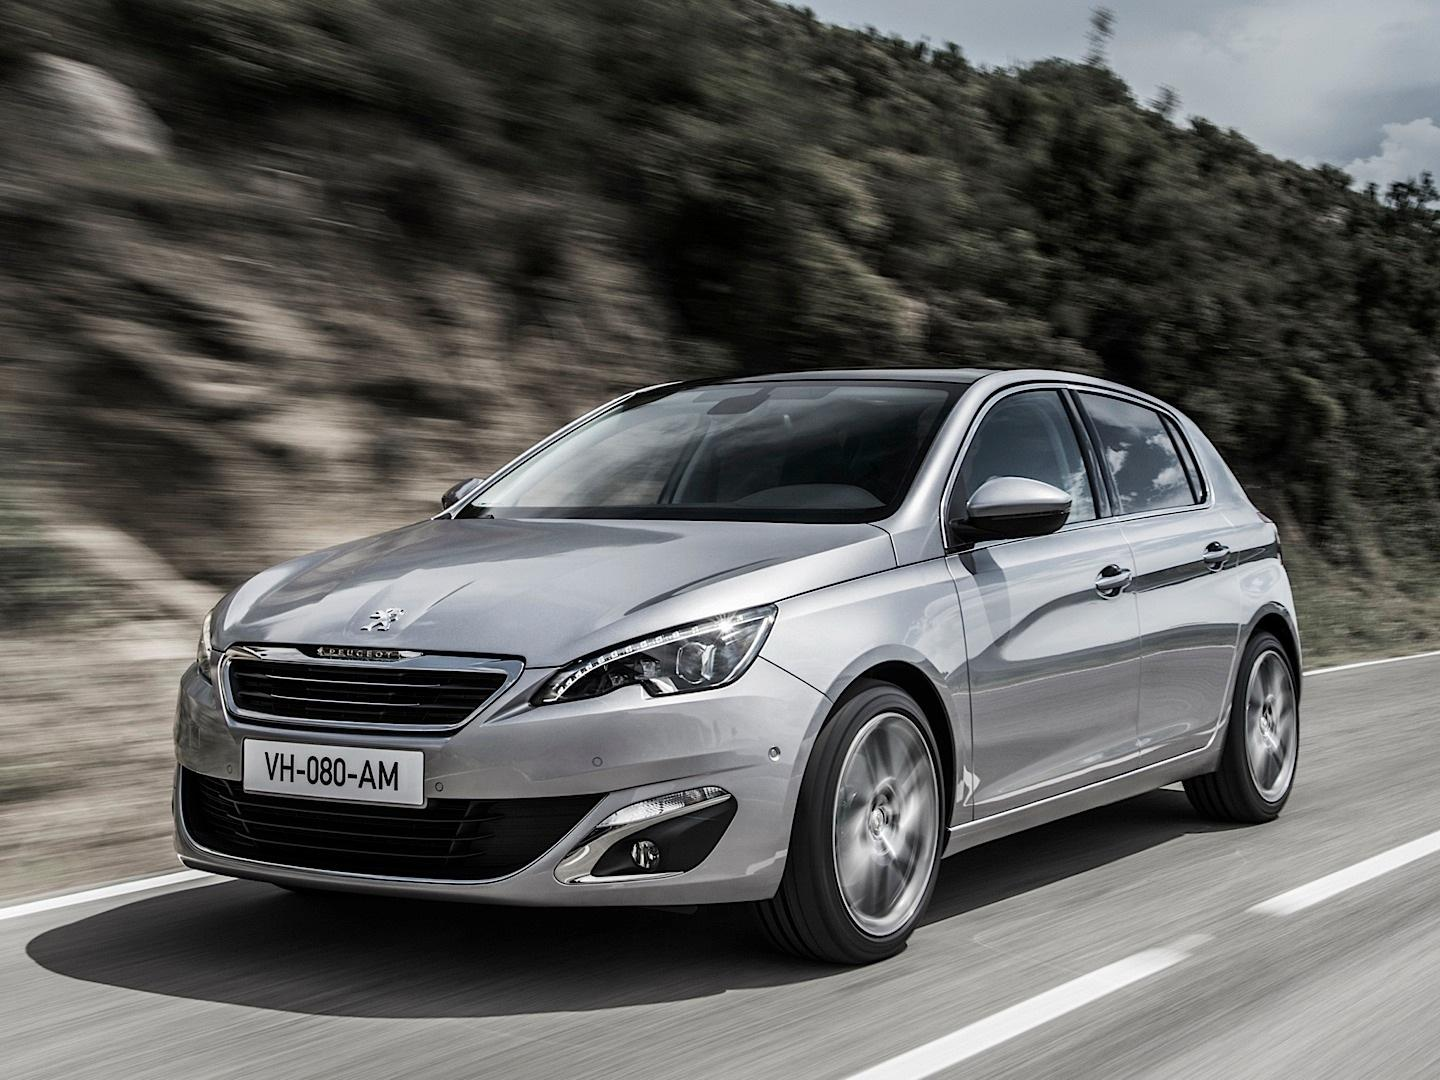 بيجو 308 2014-fresh-2014-peugeot-308-photos-leaked-shed-new-light-on-french-compact-photo-gallery_18